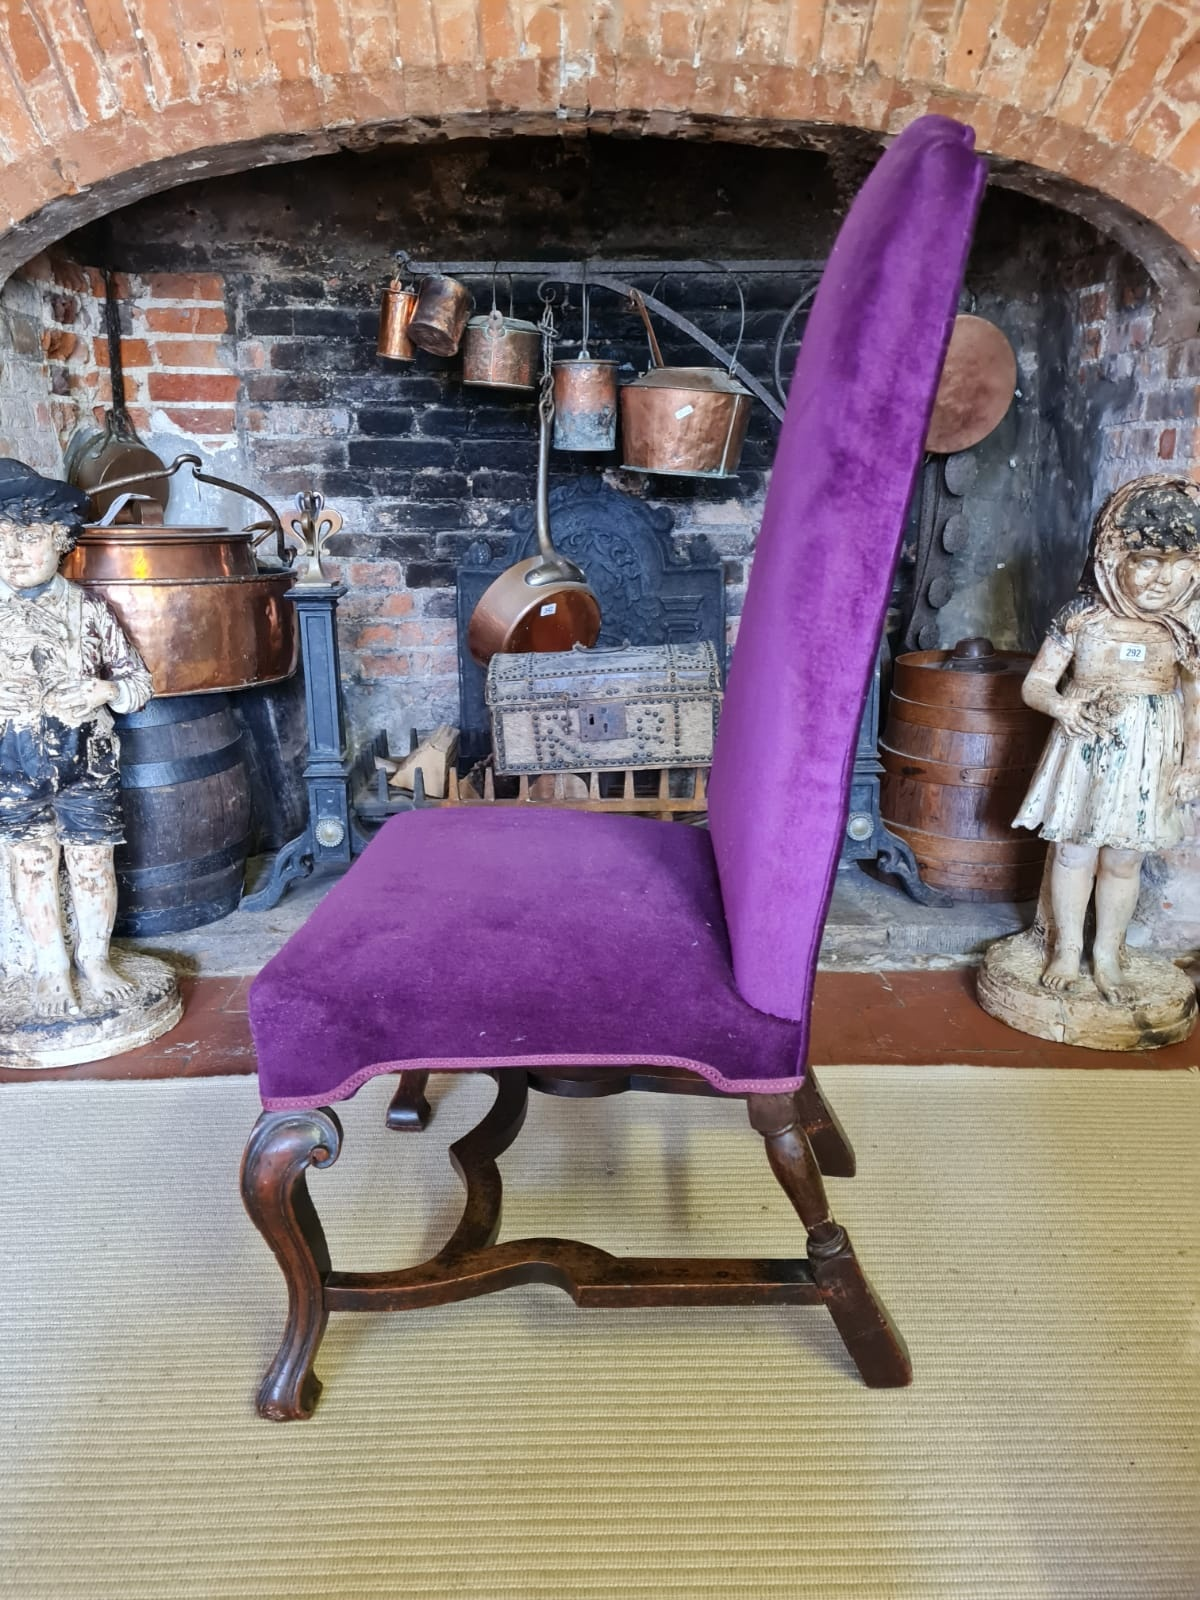 AN 18TH CENTURY WALNUT STANDARD CHAIR Upholstered in a purple fabric, raised on square cabriole legs - Image 2 of 3